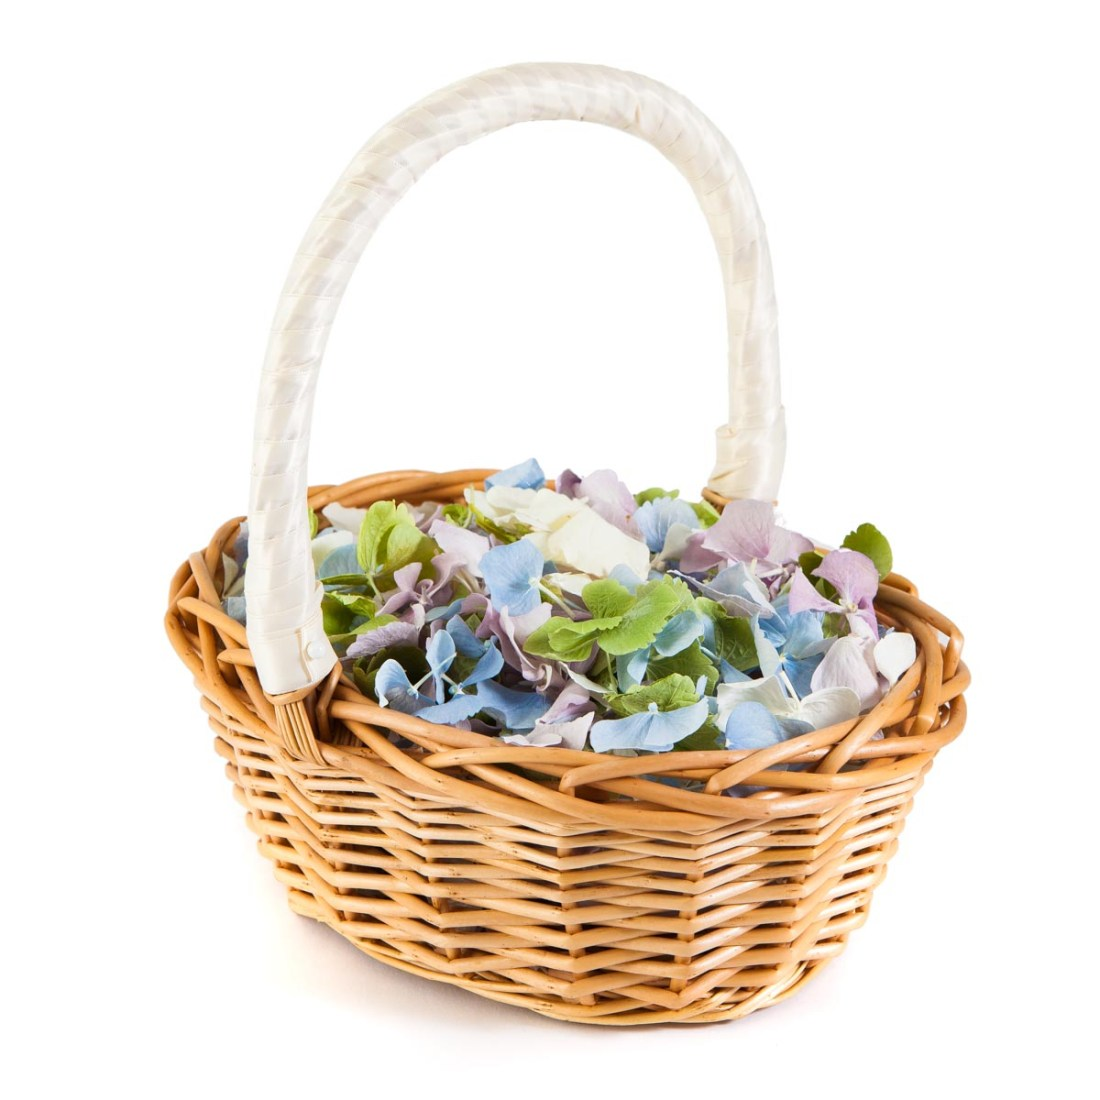 https://i1.wp.com/www.confettidirect.co.uk/wp-content/uploads/2018/12/flower-girl-baskets-real-flower-petal-confetti-hydrangea-petals.jpg?resize=1100%2C1100&ssl=1